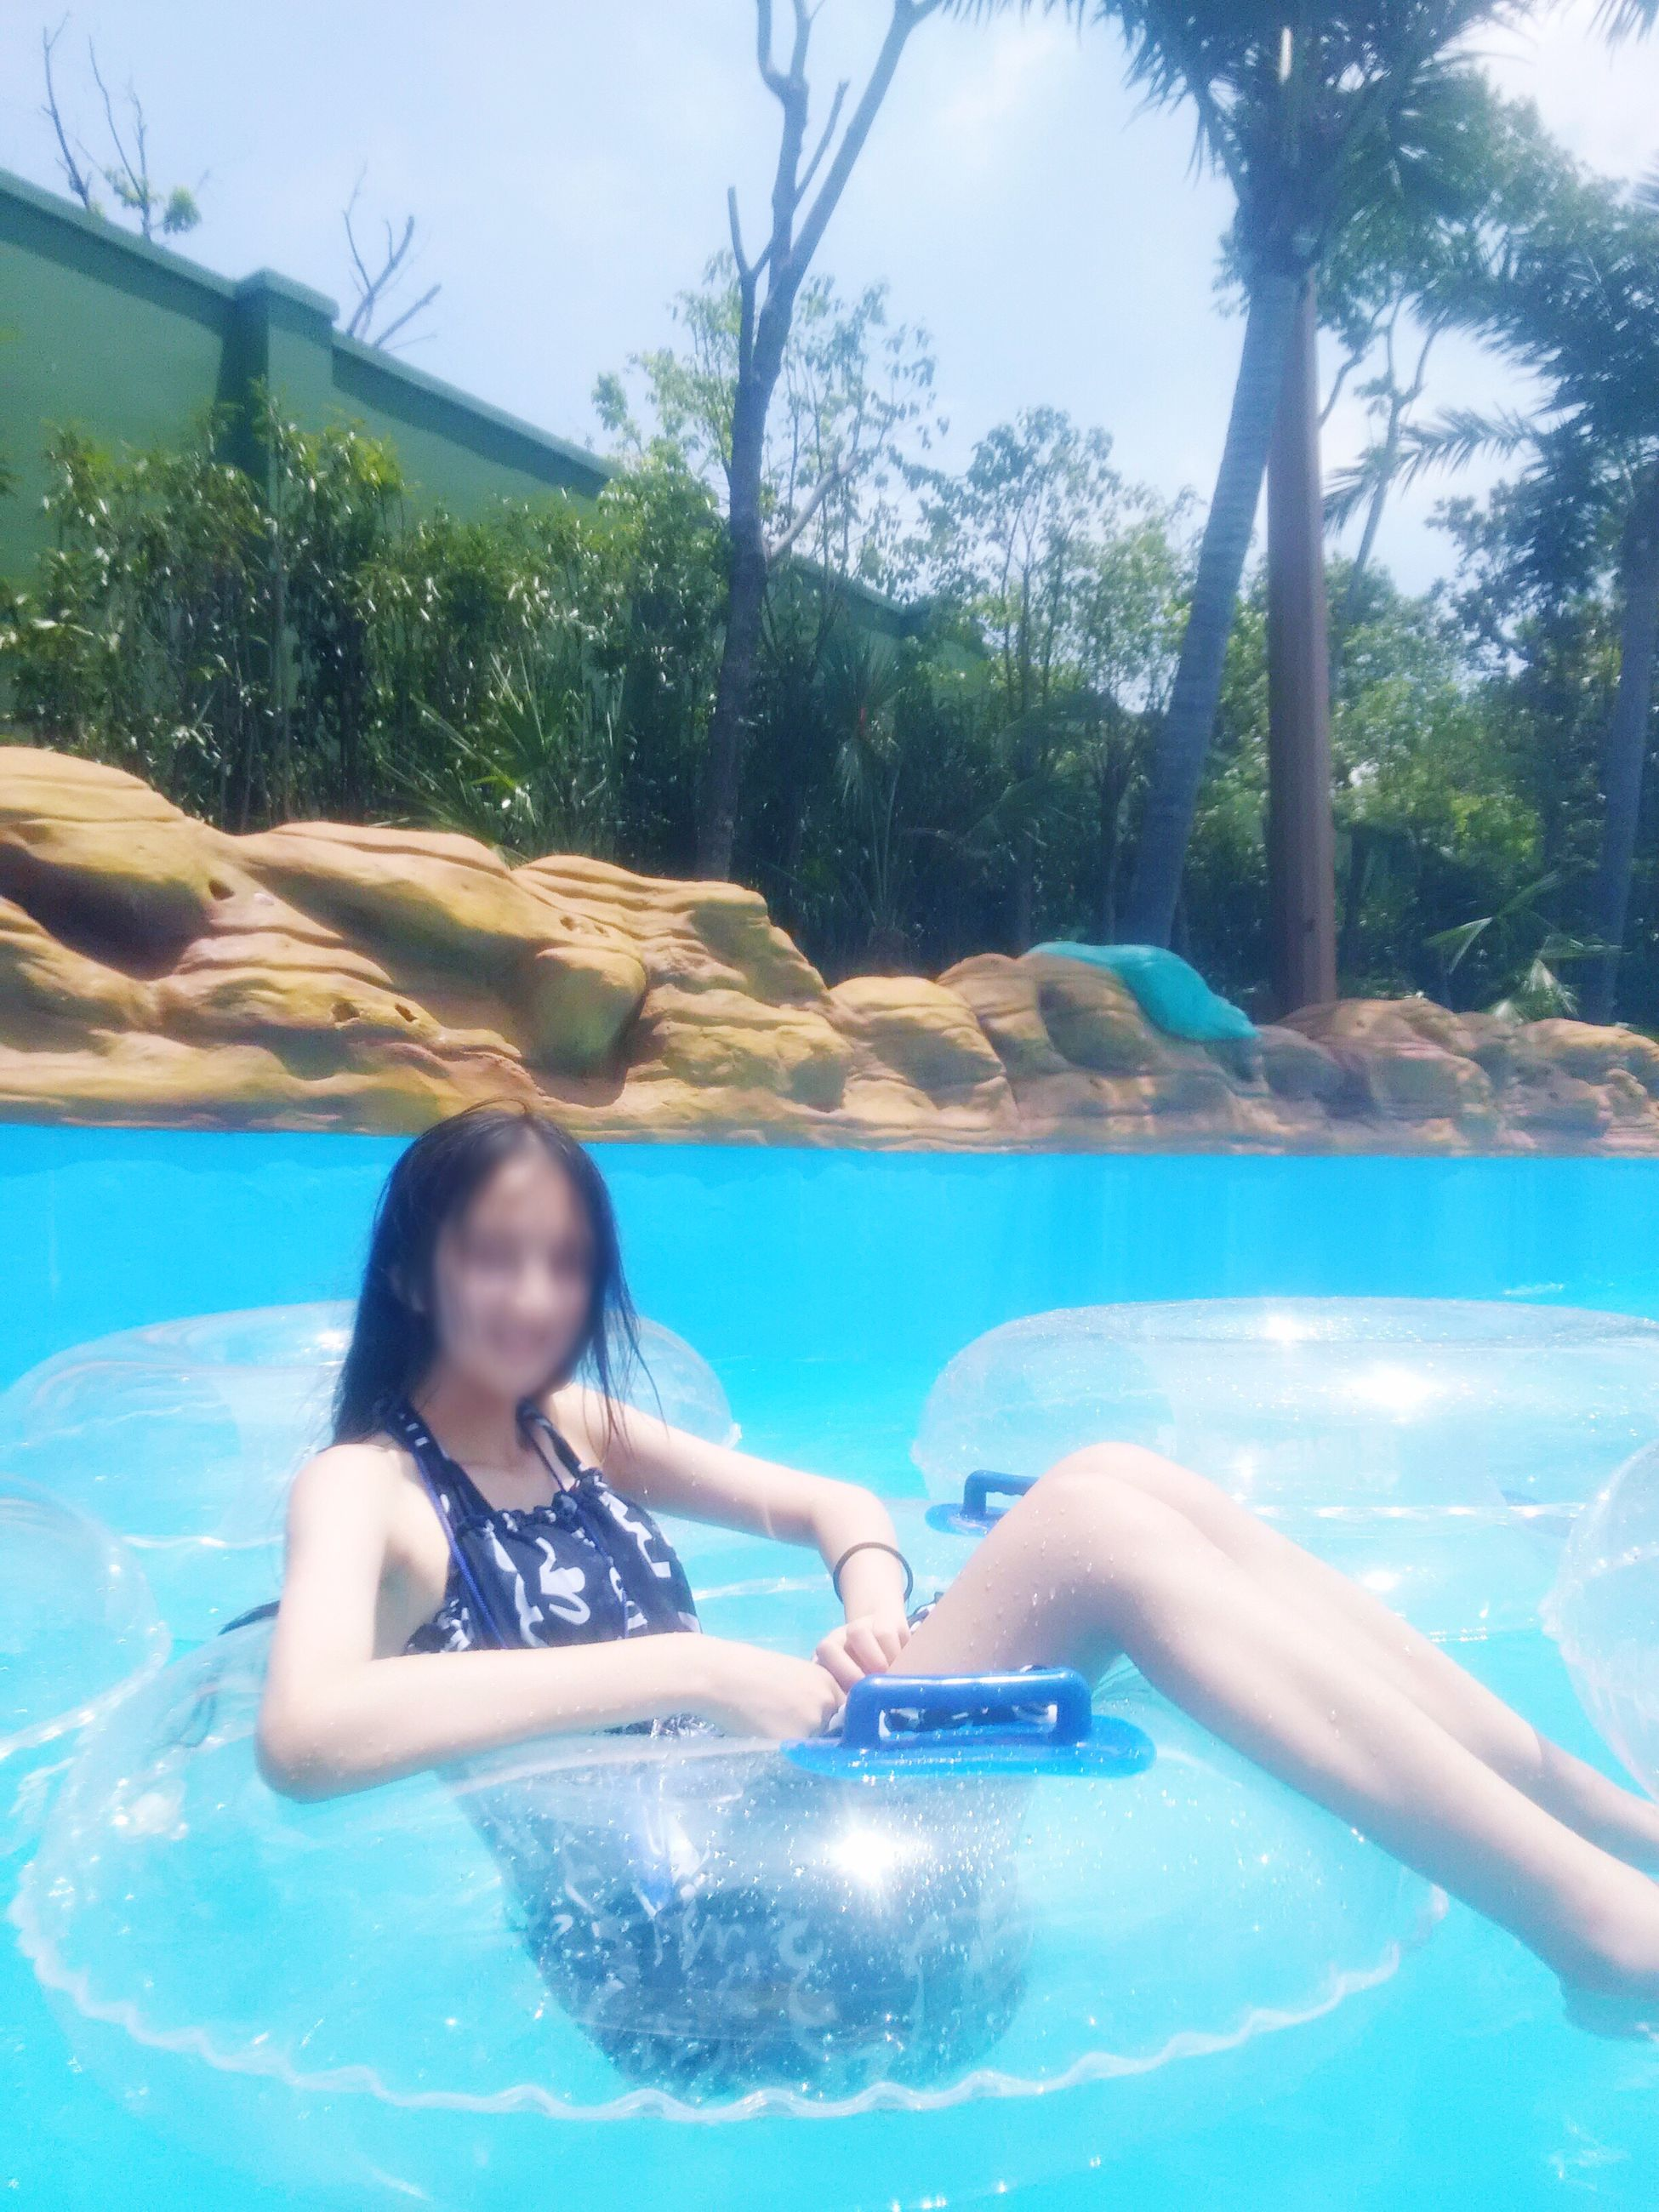 swimming pool, water, leisure activity, real people, tree, day, one person, lifestyles, fun, outdoors, enjoyment, sunlight, swimming, happiness, vacations, young women, summer, young adult, relaxation, smiling, nature, sky, people